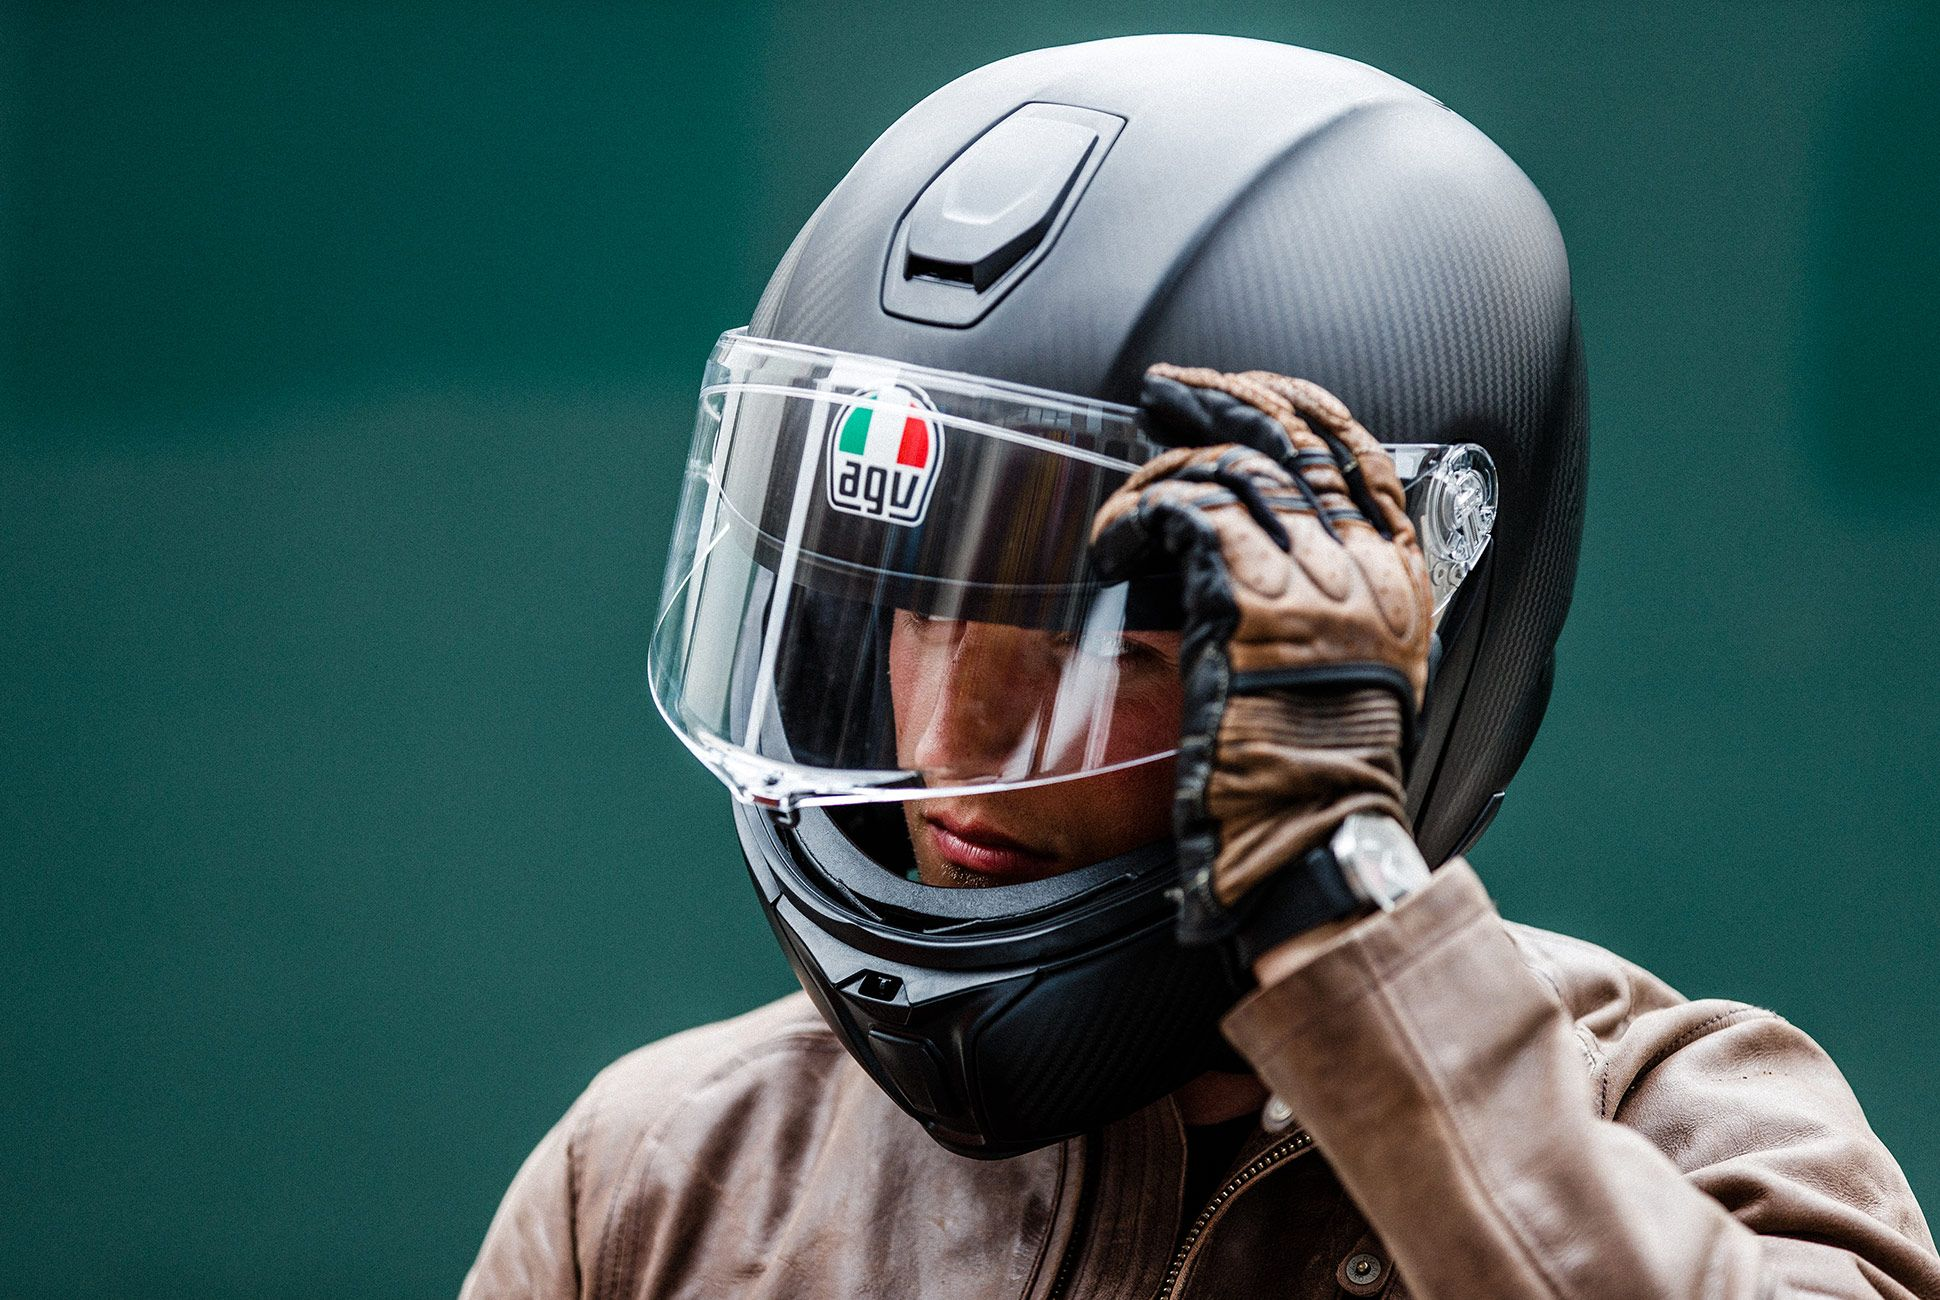 AGV Sportmodular Carbon Helmet Review In a Class of Its